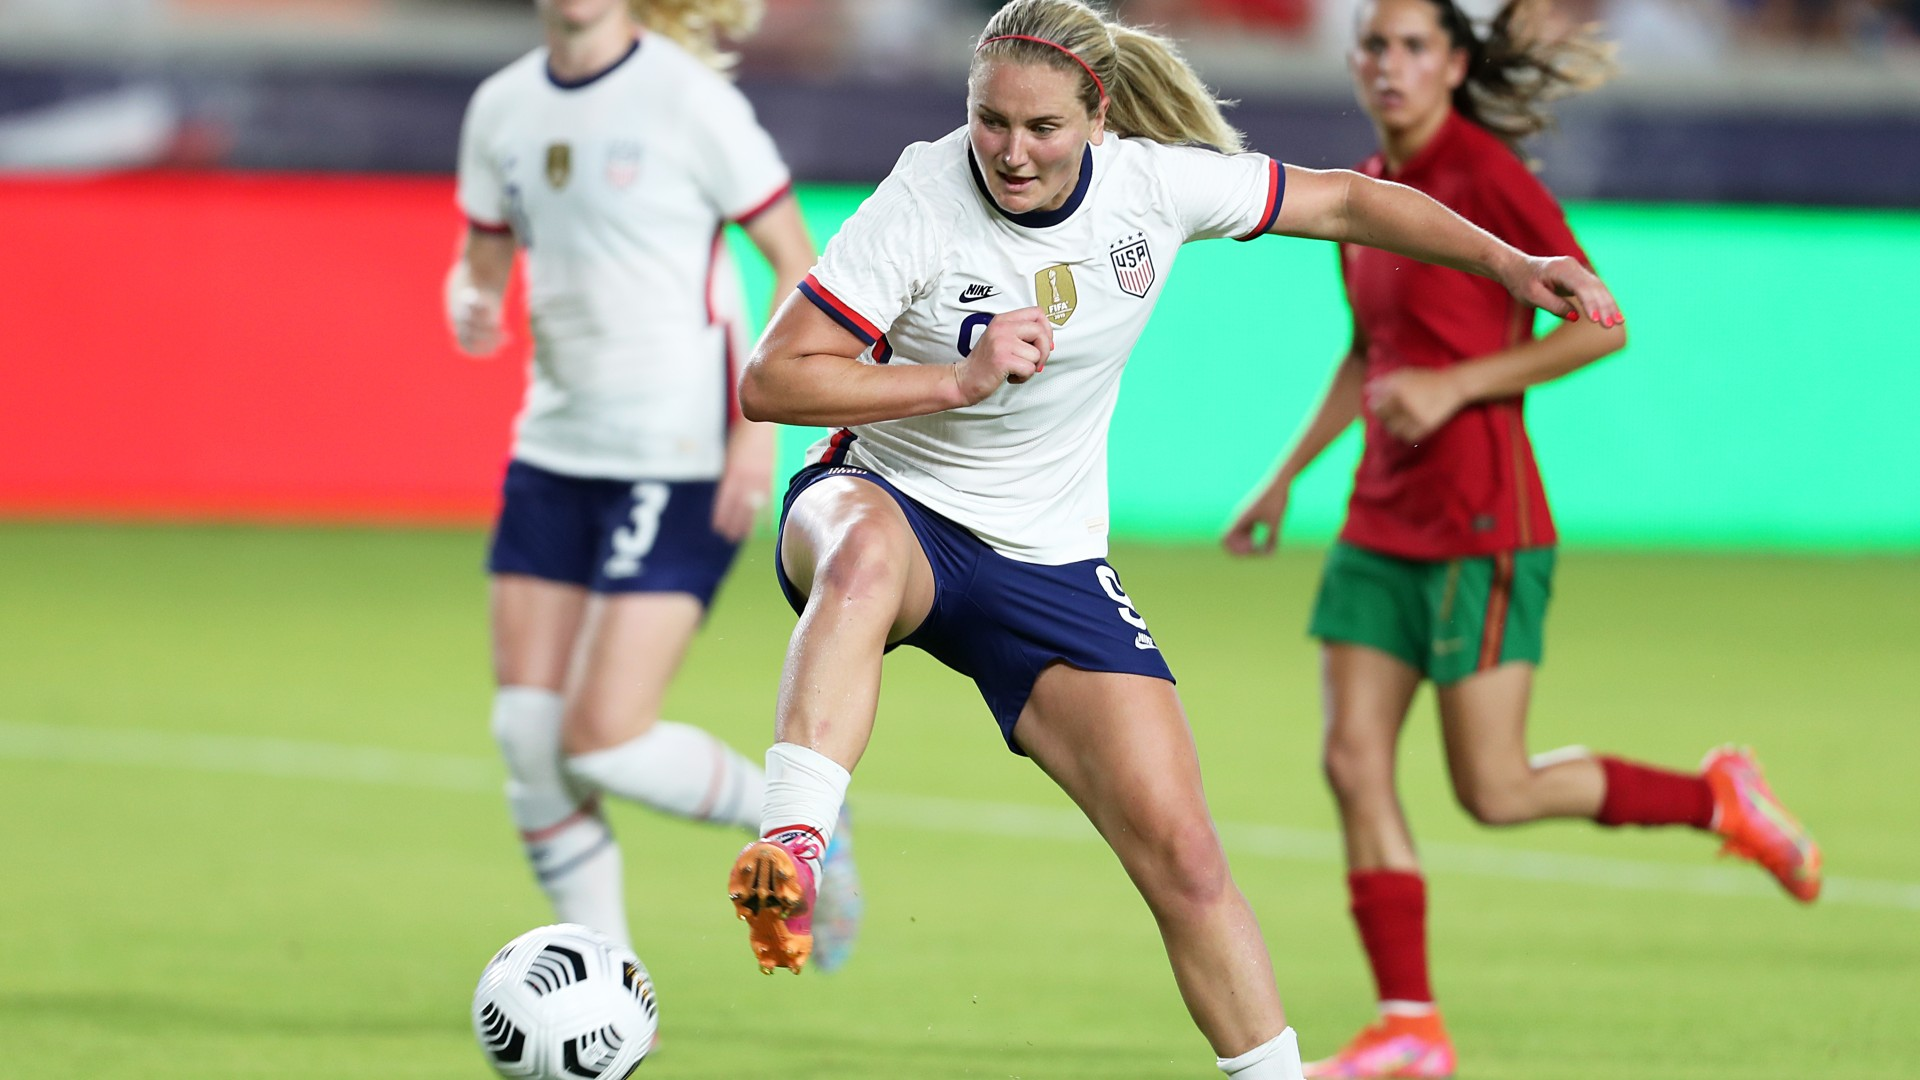 Portugal shows Lindsey Horan's USWNT could raise six concerns about Julie Ertz's injury